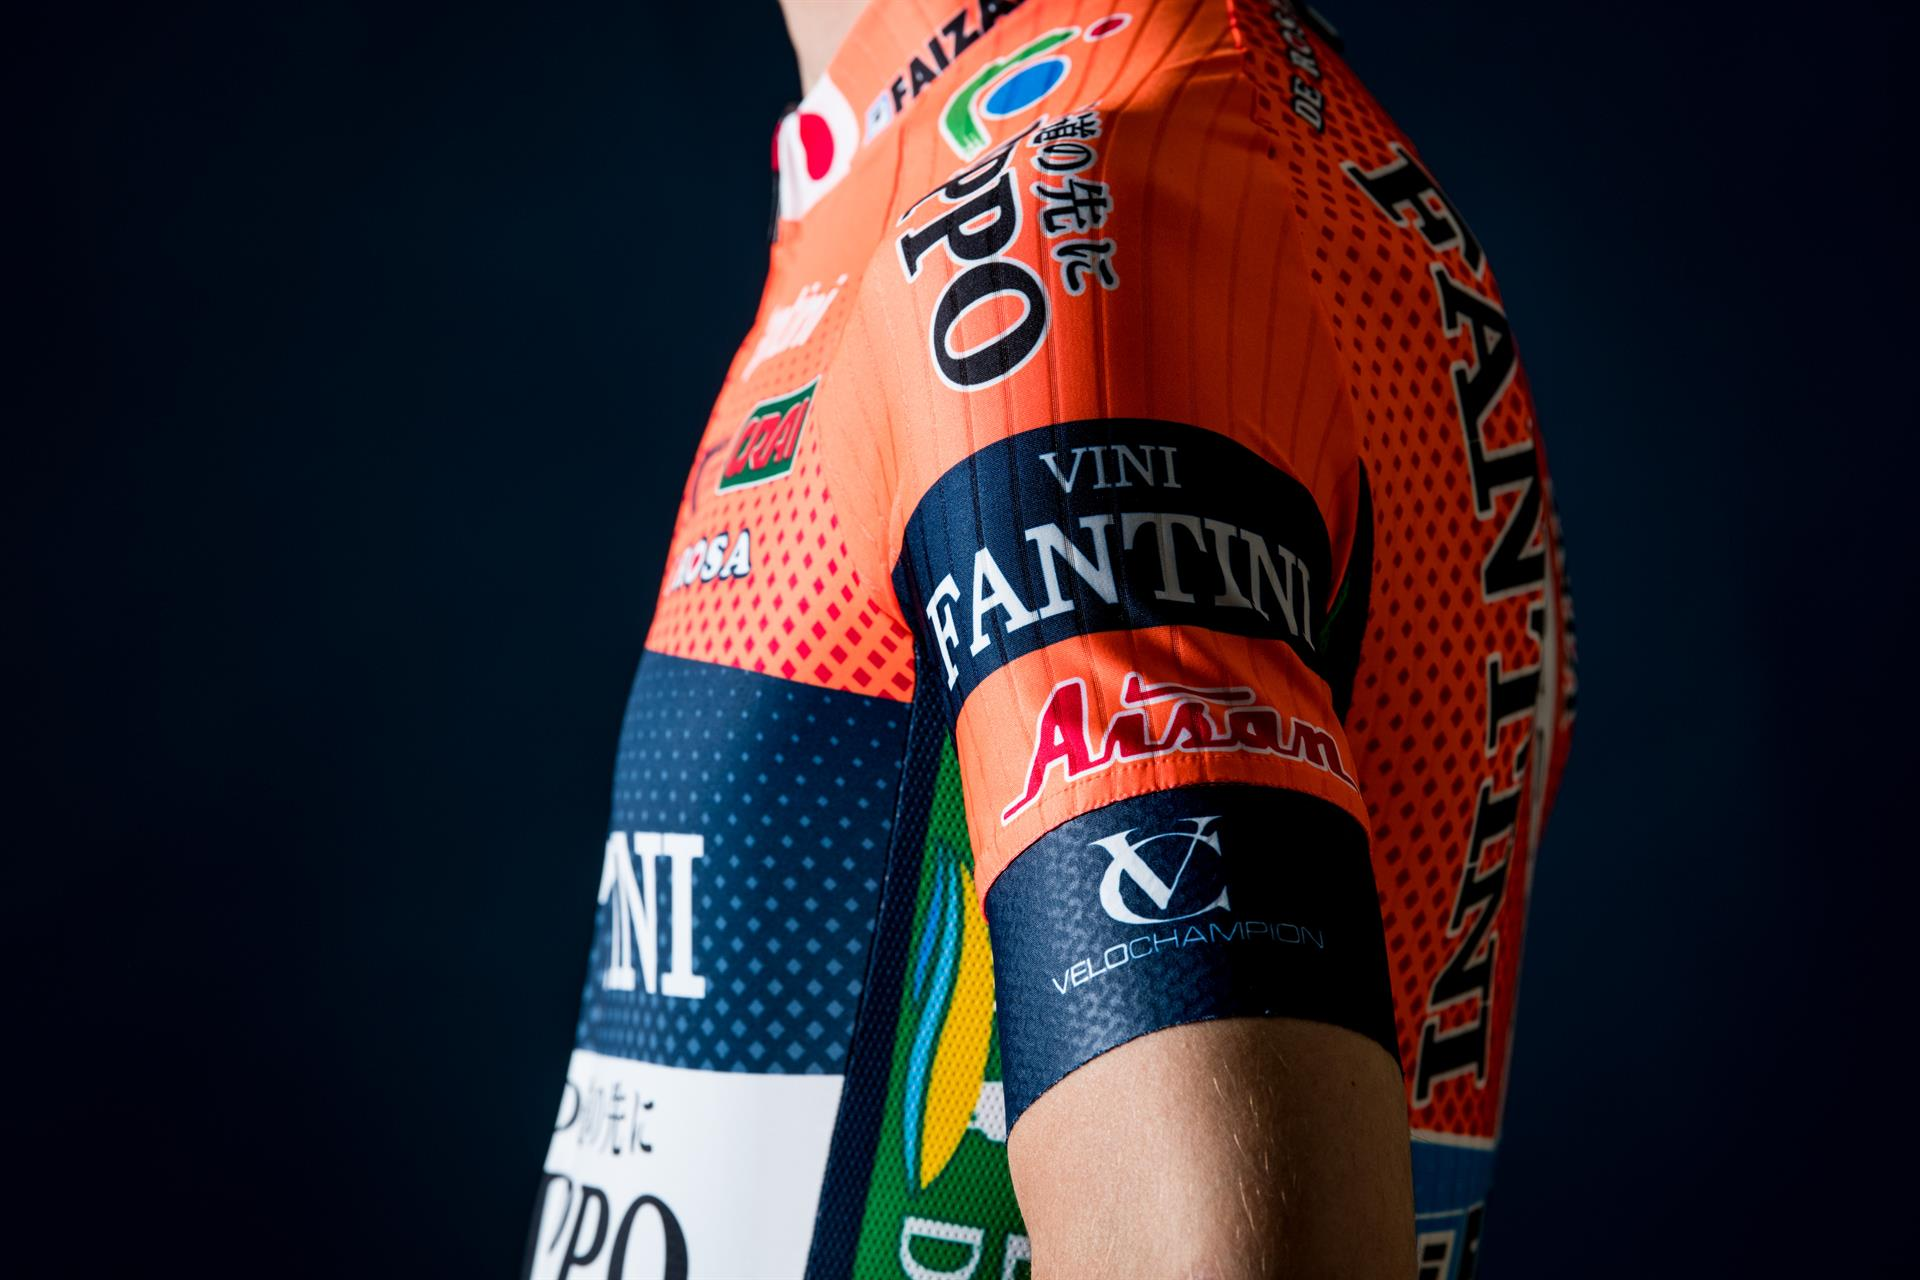 VELOCHAMPION Elevates 2019 Sponsorship for Team NIPPO Vini Fantini Faizane.